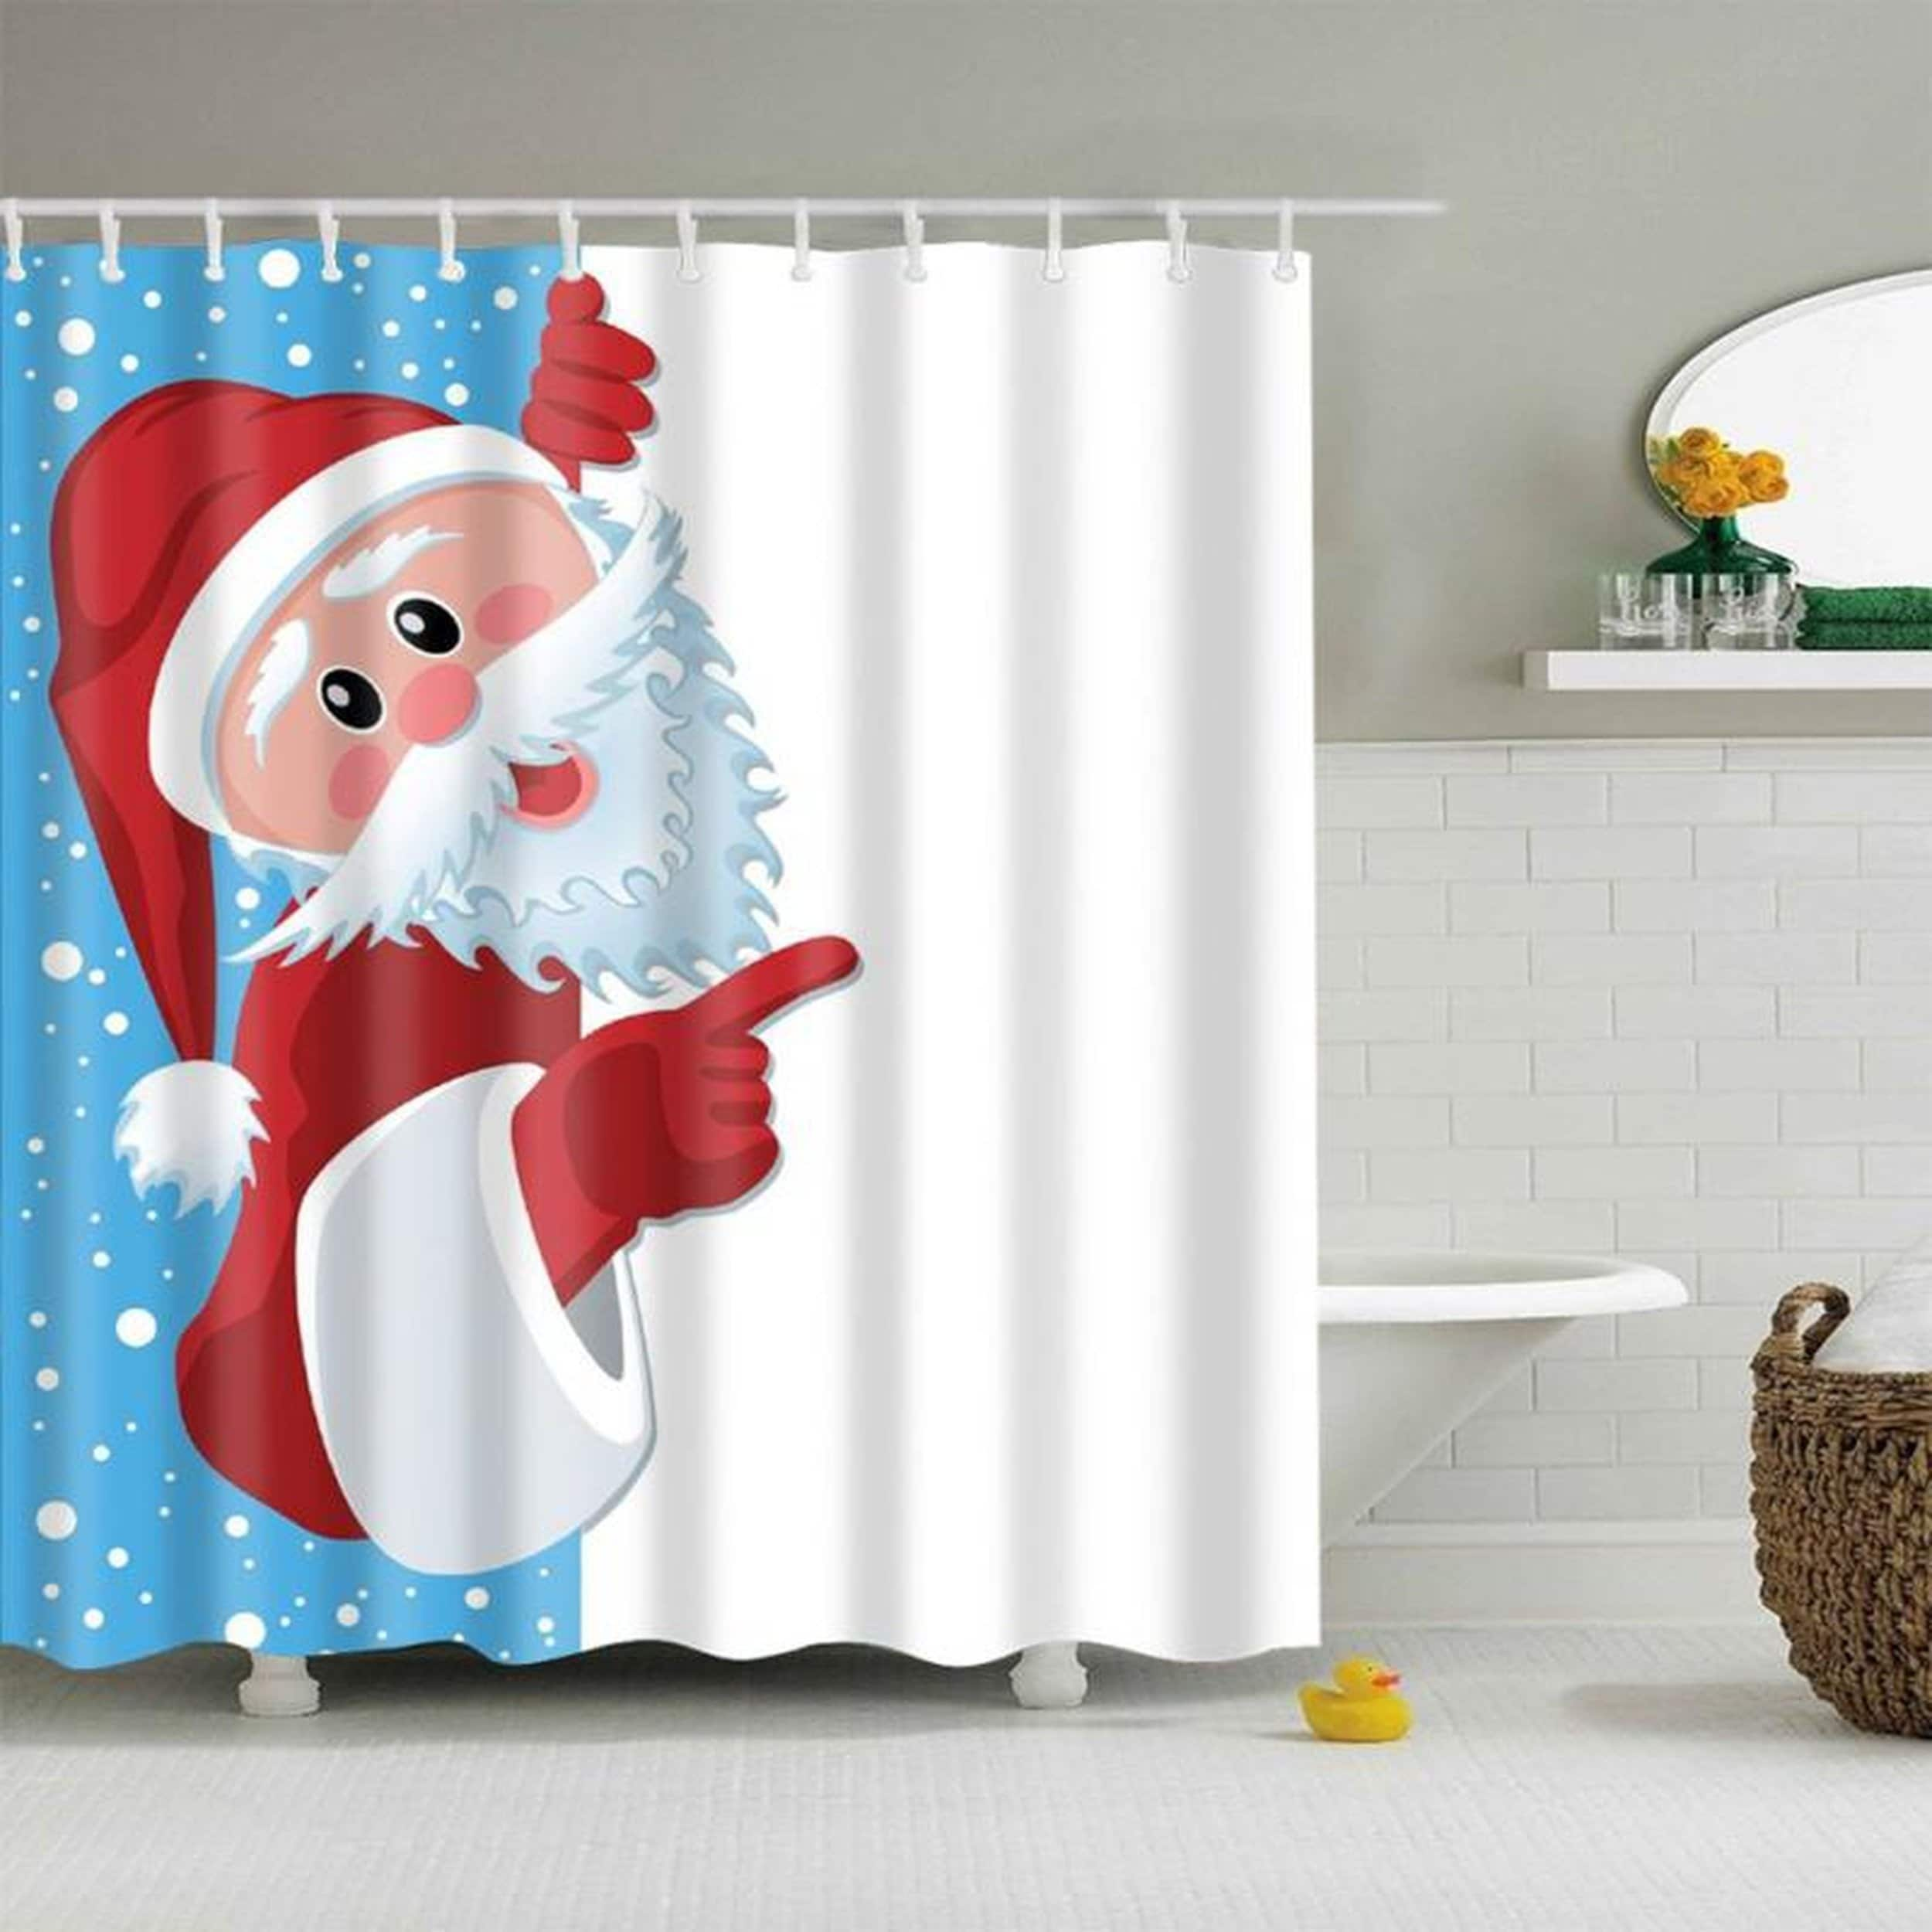 Bathroom Shower Curtains Funny Merry Christmas Waterproof Polyester